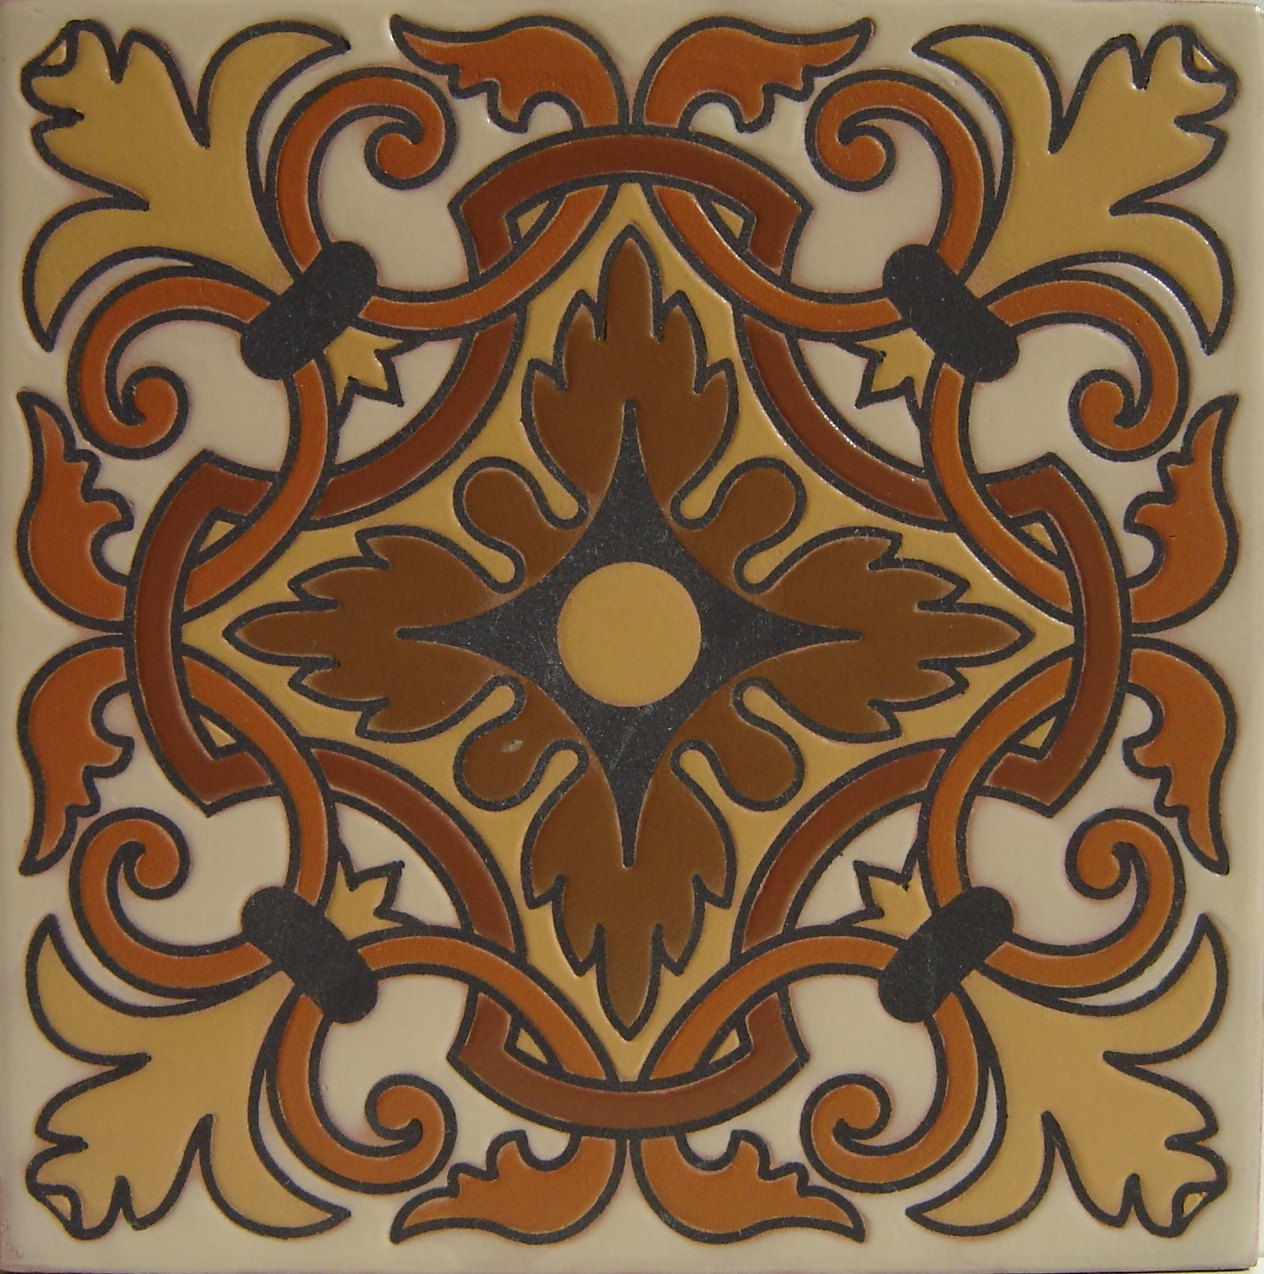 Elegance Ce 009 Decorative Mexican Talavera Ceramic Tile 6 X 6 Set Of 4 Tiles Tile Art